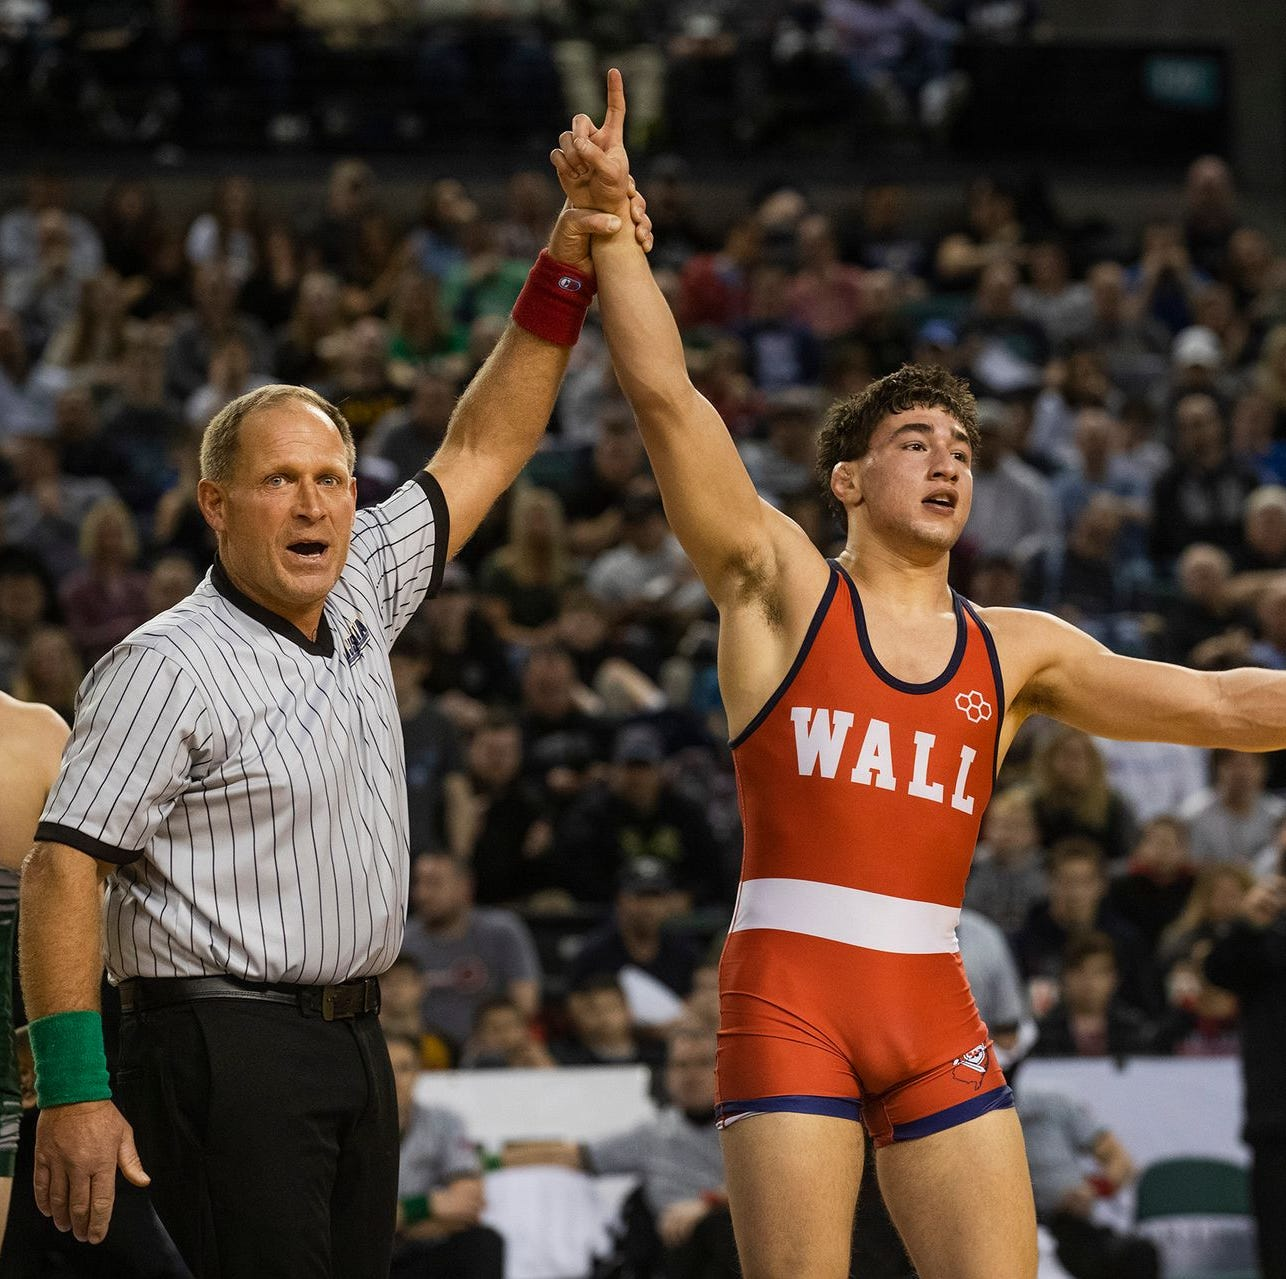 NJ wrestling: The best and worst from the 2018-2019 season